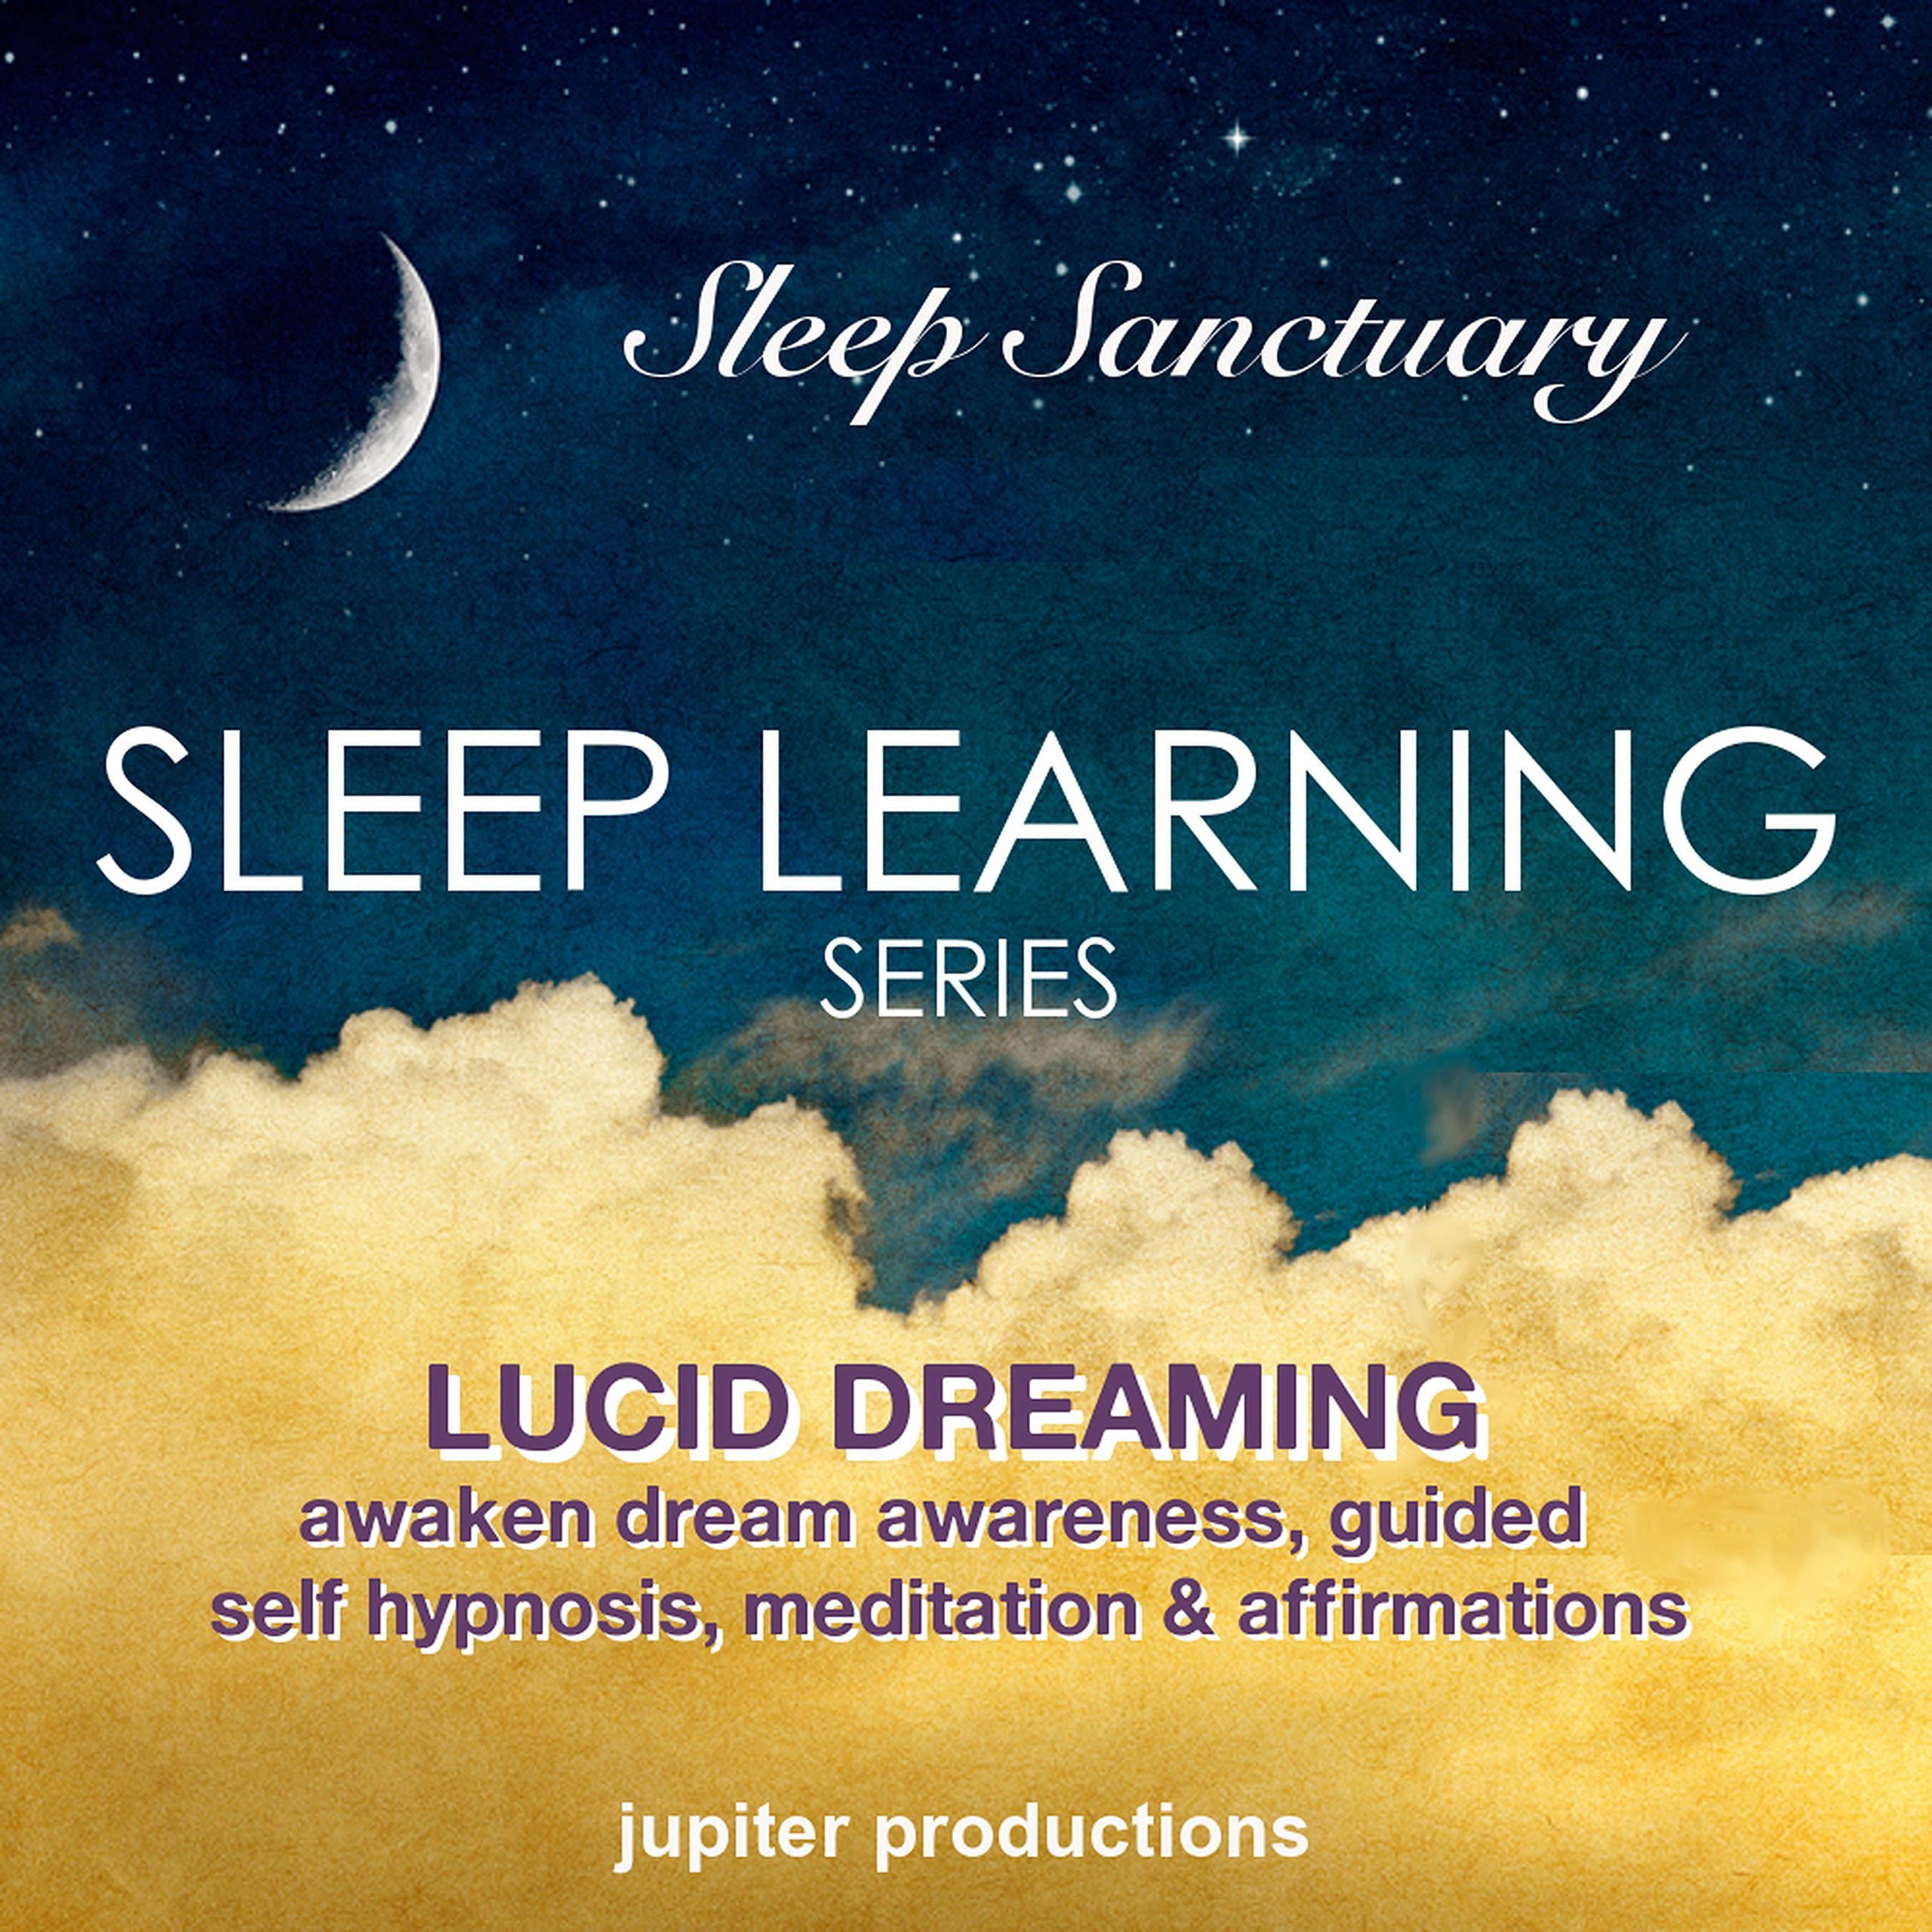 Lucid Dreaming, Awaken Dream Awareness: Sleep Learning, Guided Self Hypnosis, Meditation & Affirmations